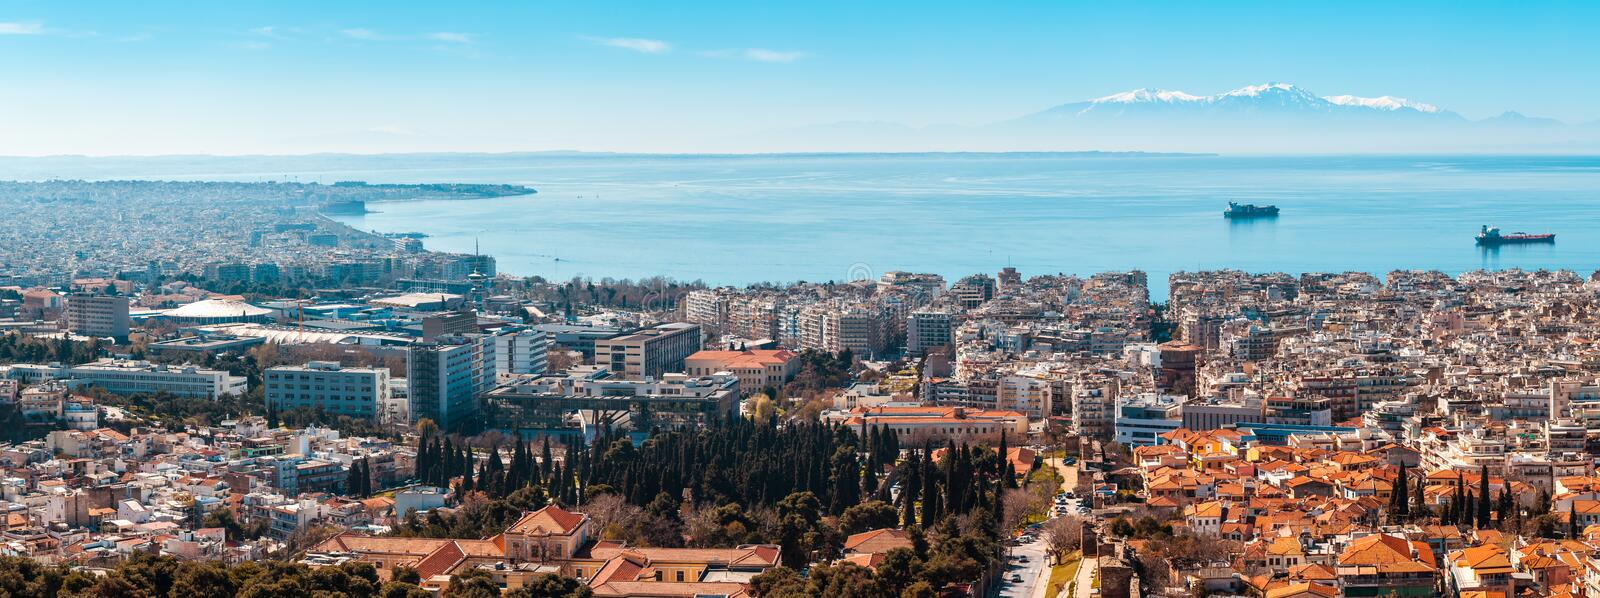 10 03 2018 Salonique, Grèce - vue panoramique de Salonique photo stock